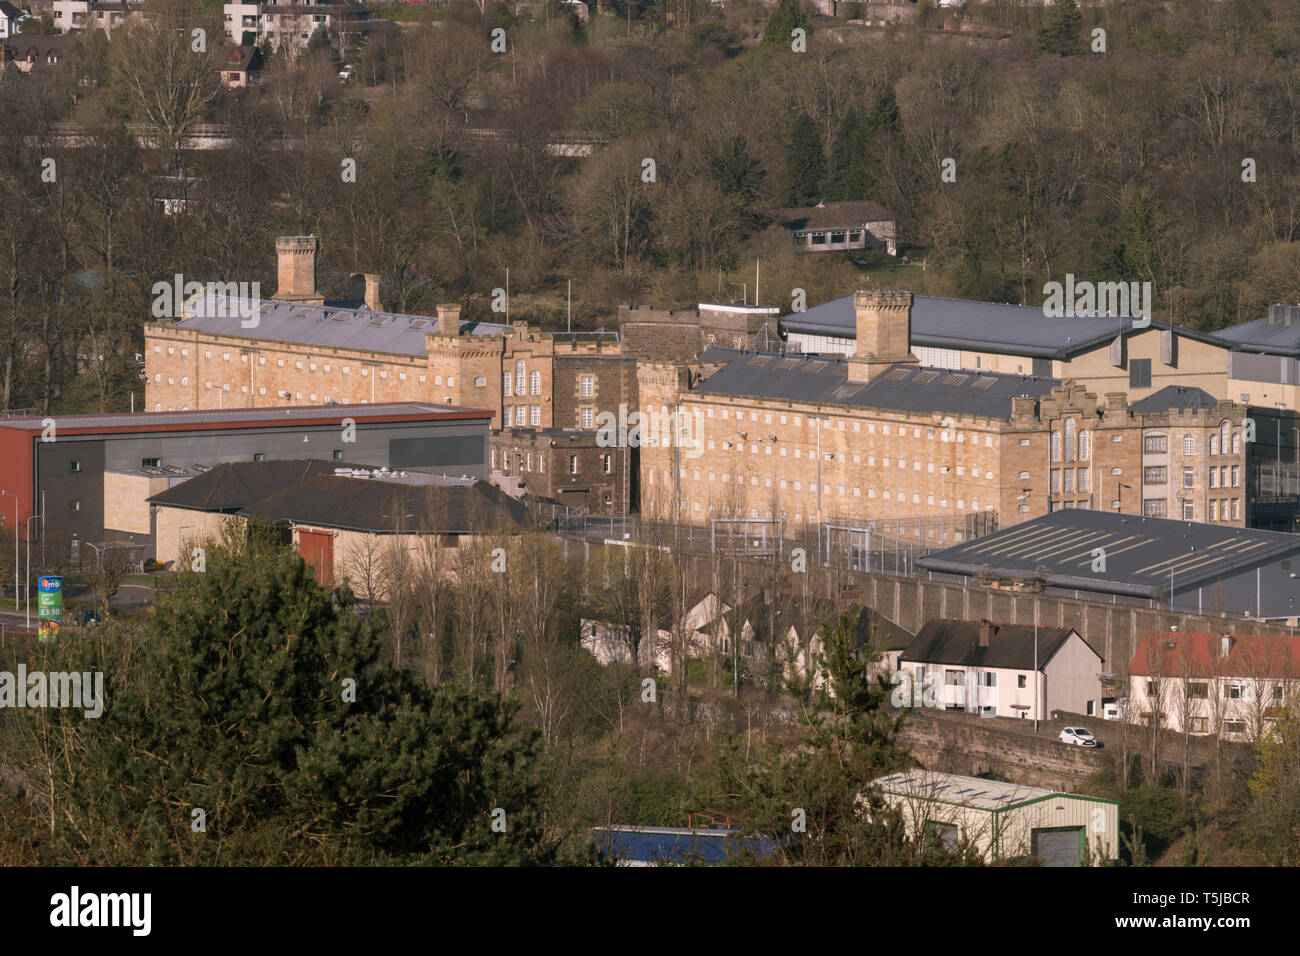 View of Perth Prison in Spring sunlight - Stock Image